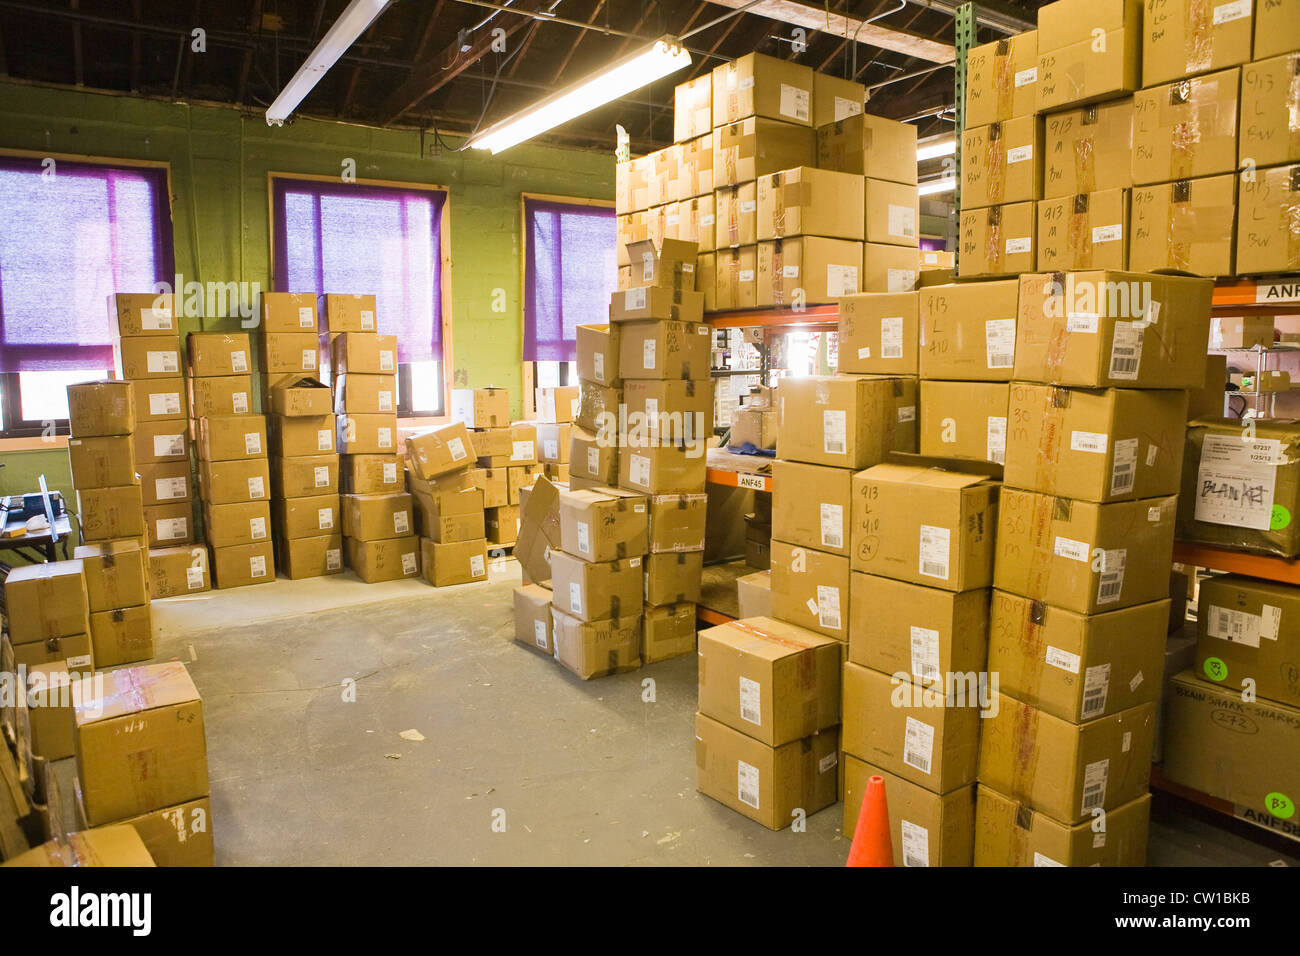 Boxes Stacked Up At Small Business Stock Photo 49818255